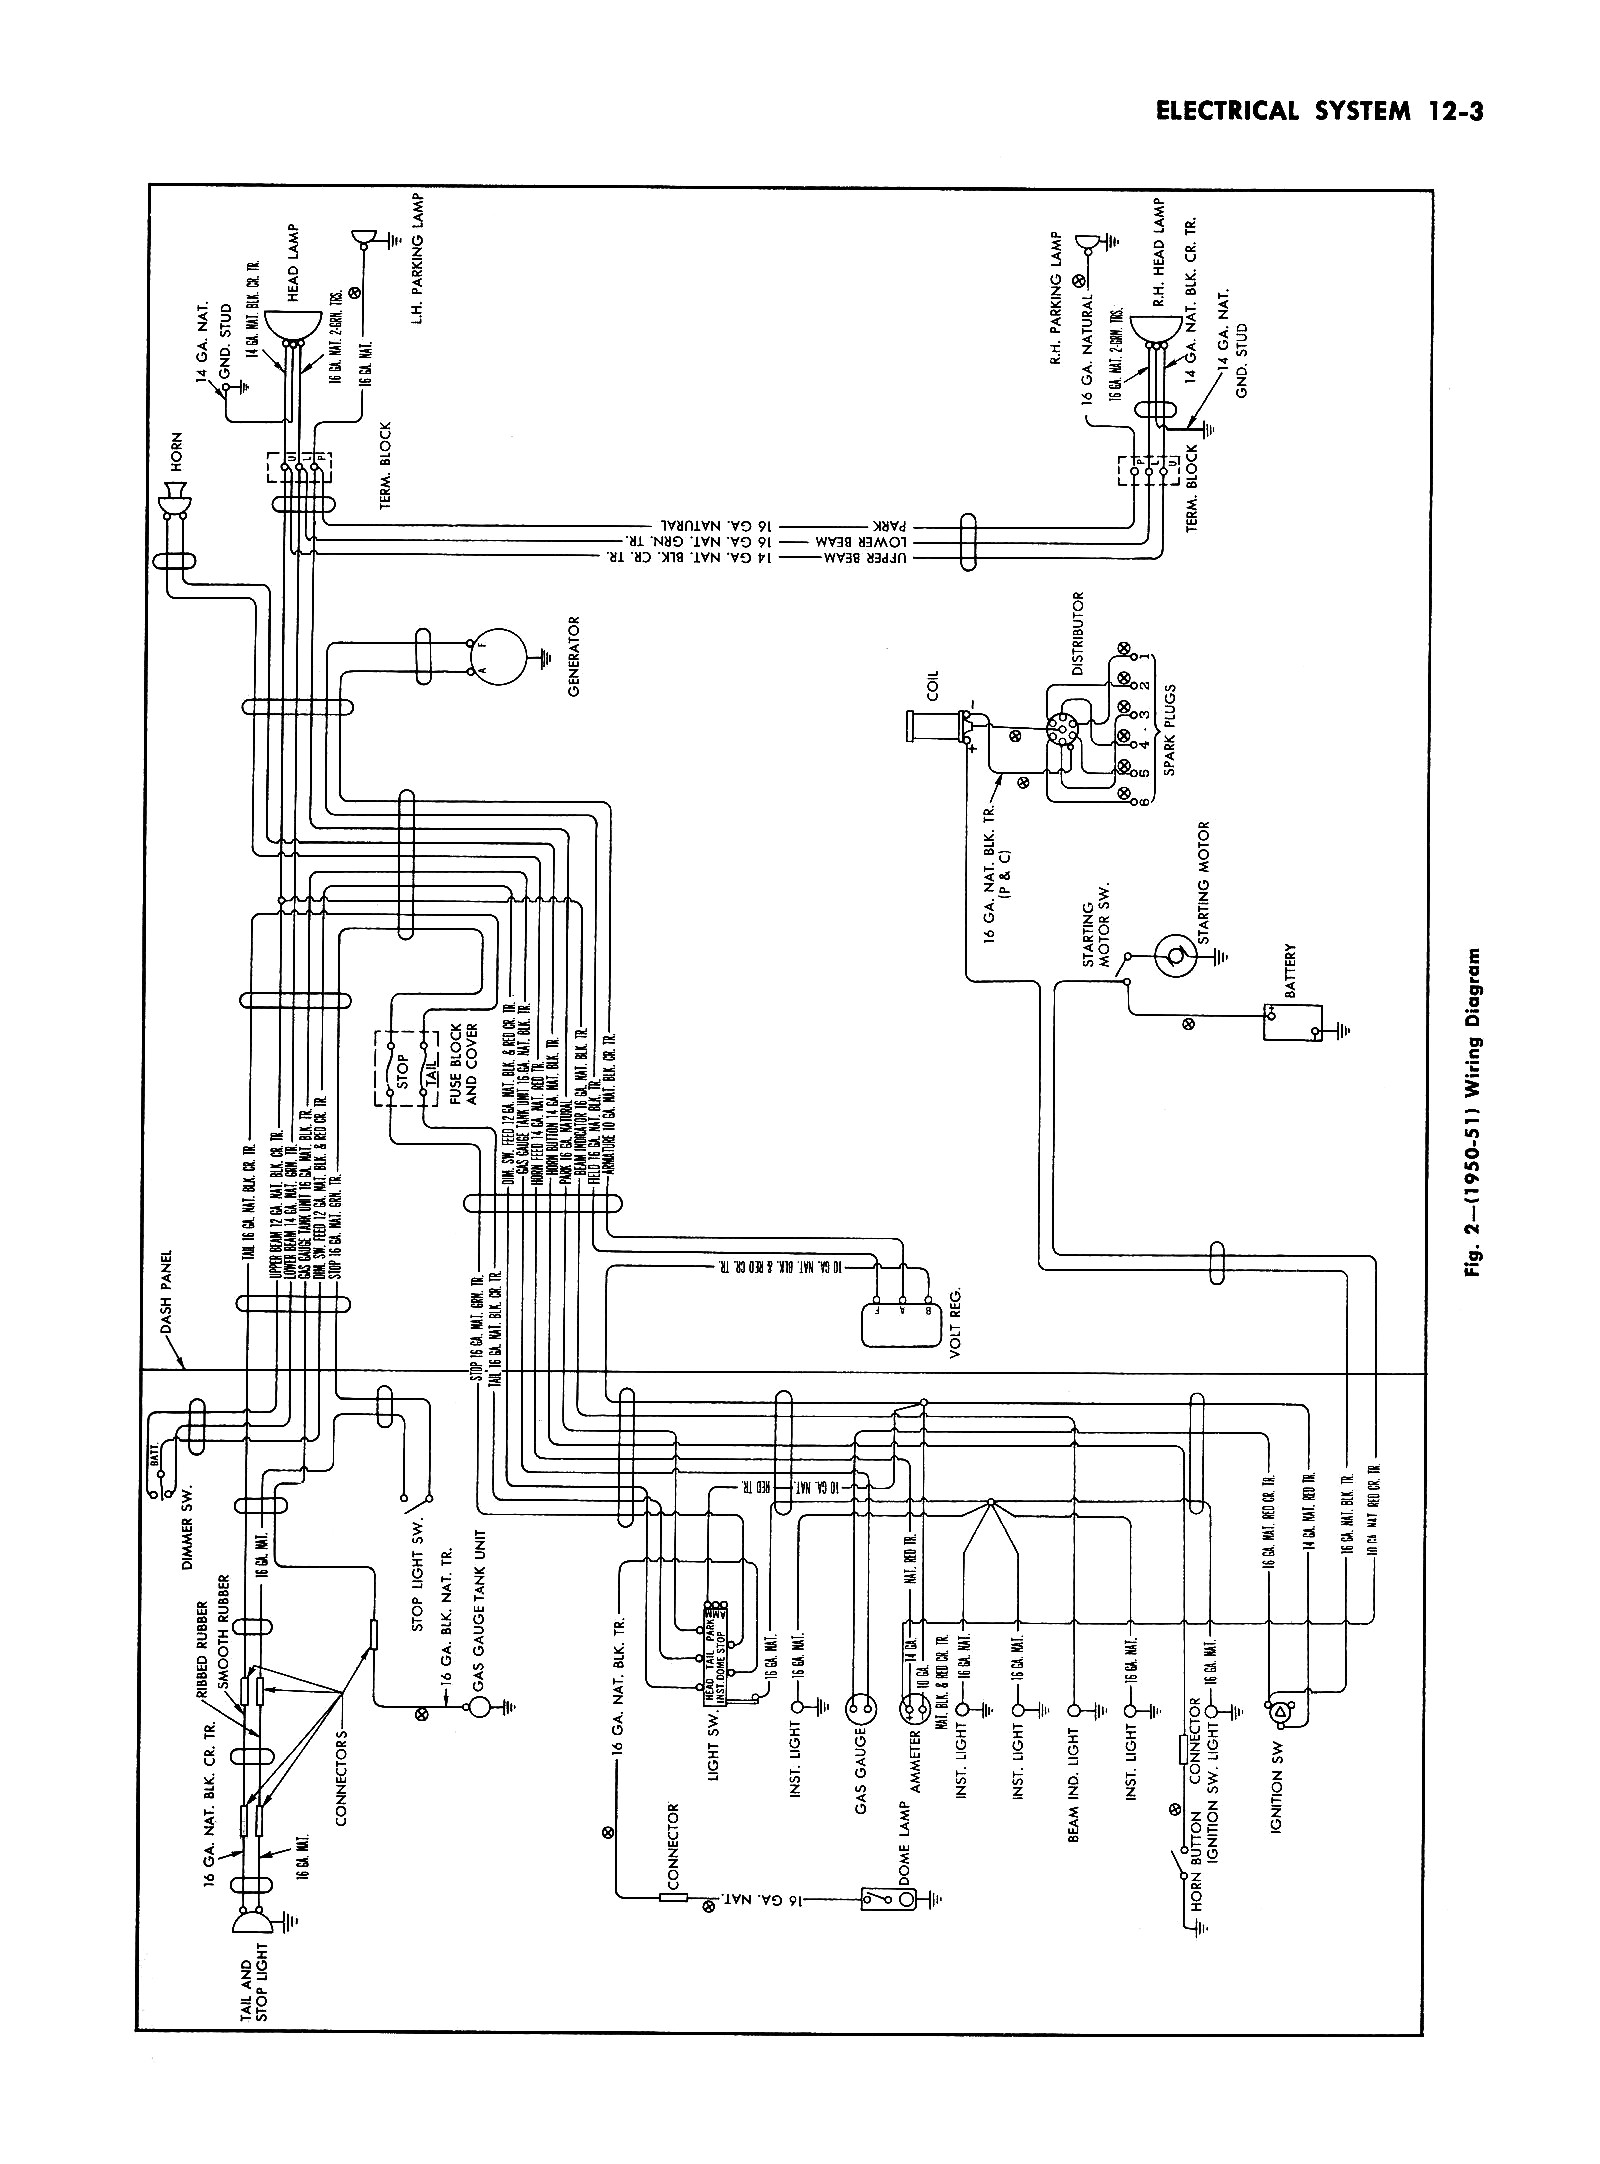 Unlabeled Diagram Of The Female Reproductive System in addition Jeep Yj Column Diagram also Gm Turn Signal Switch Wiring Diagram as well Painless Gm Column Ignition Wiring Diagram likewise Century Pool Pump Wiring Diagram. on ididit steering column wiring diagram